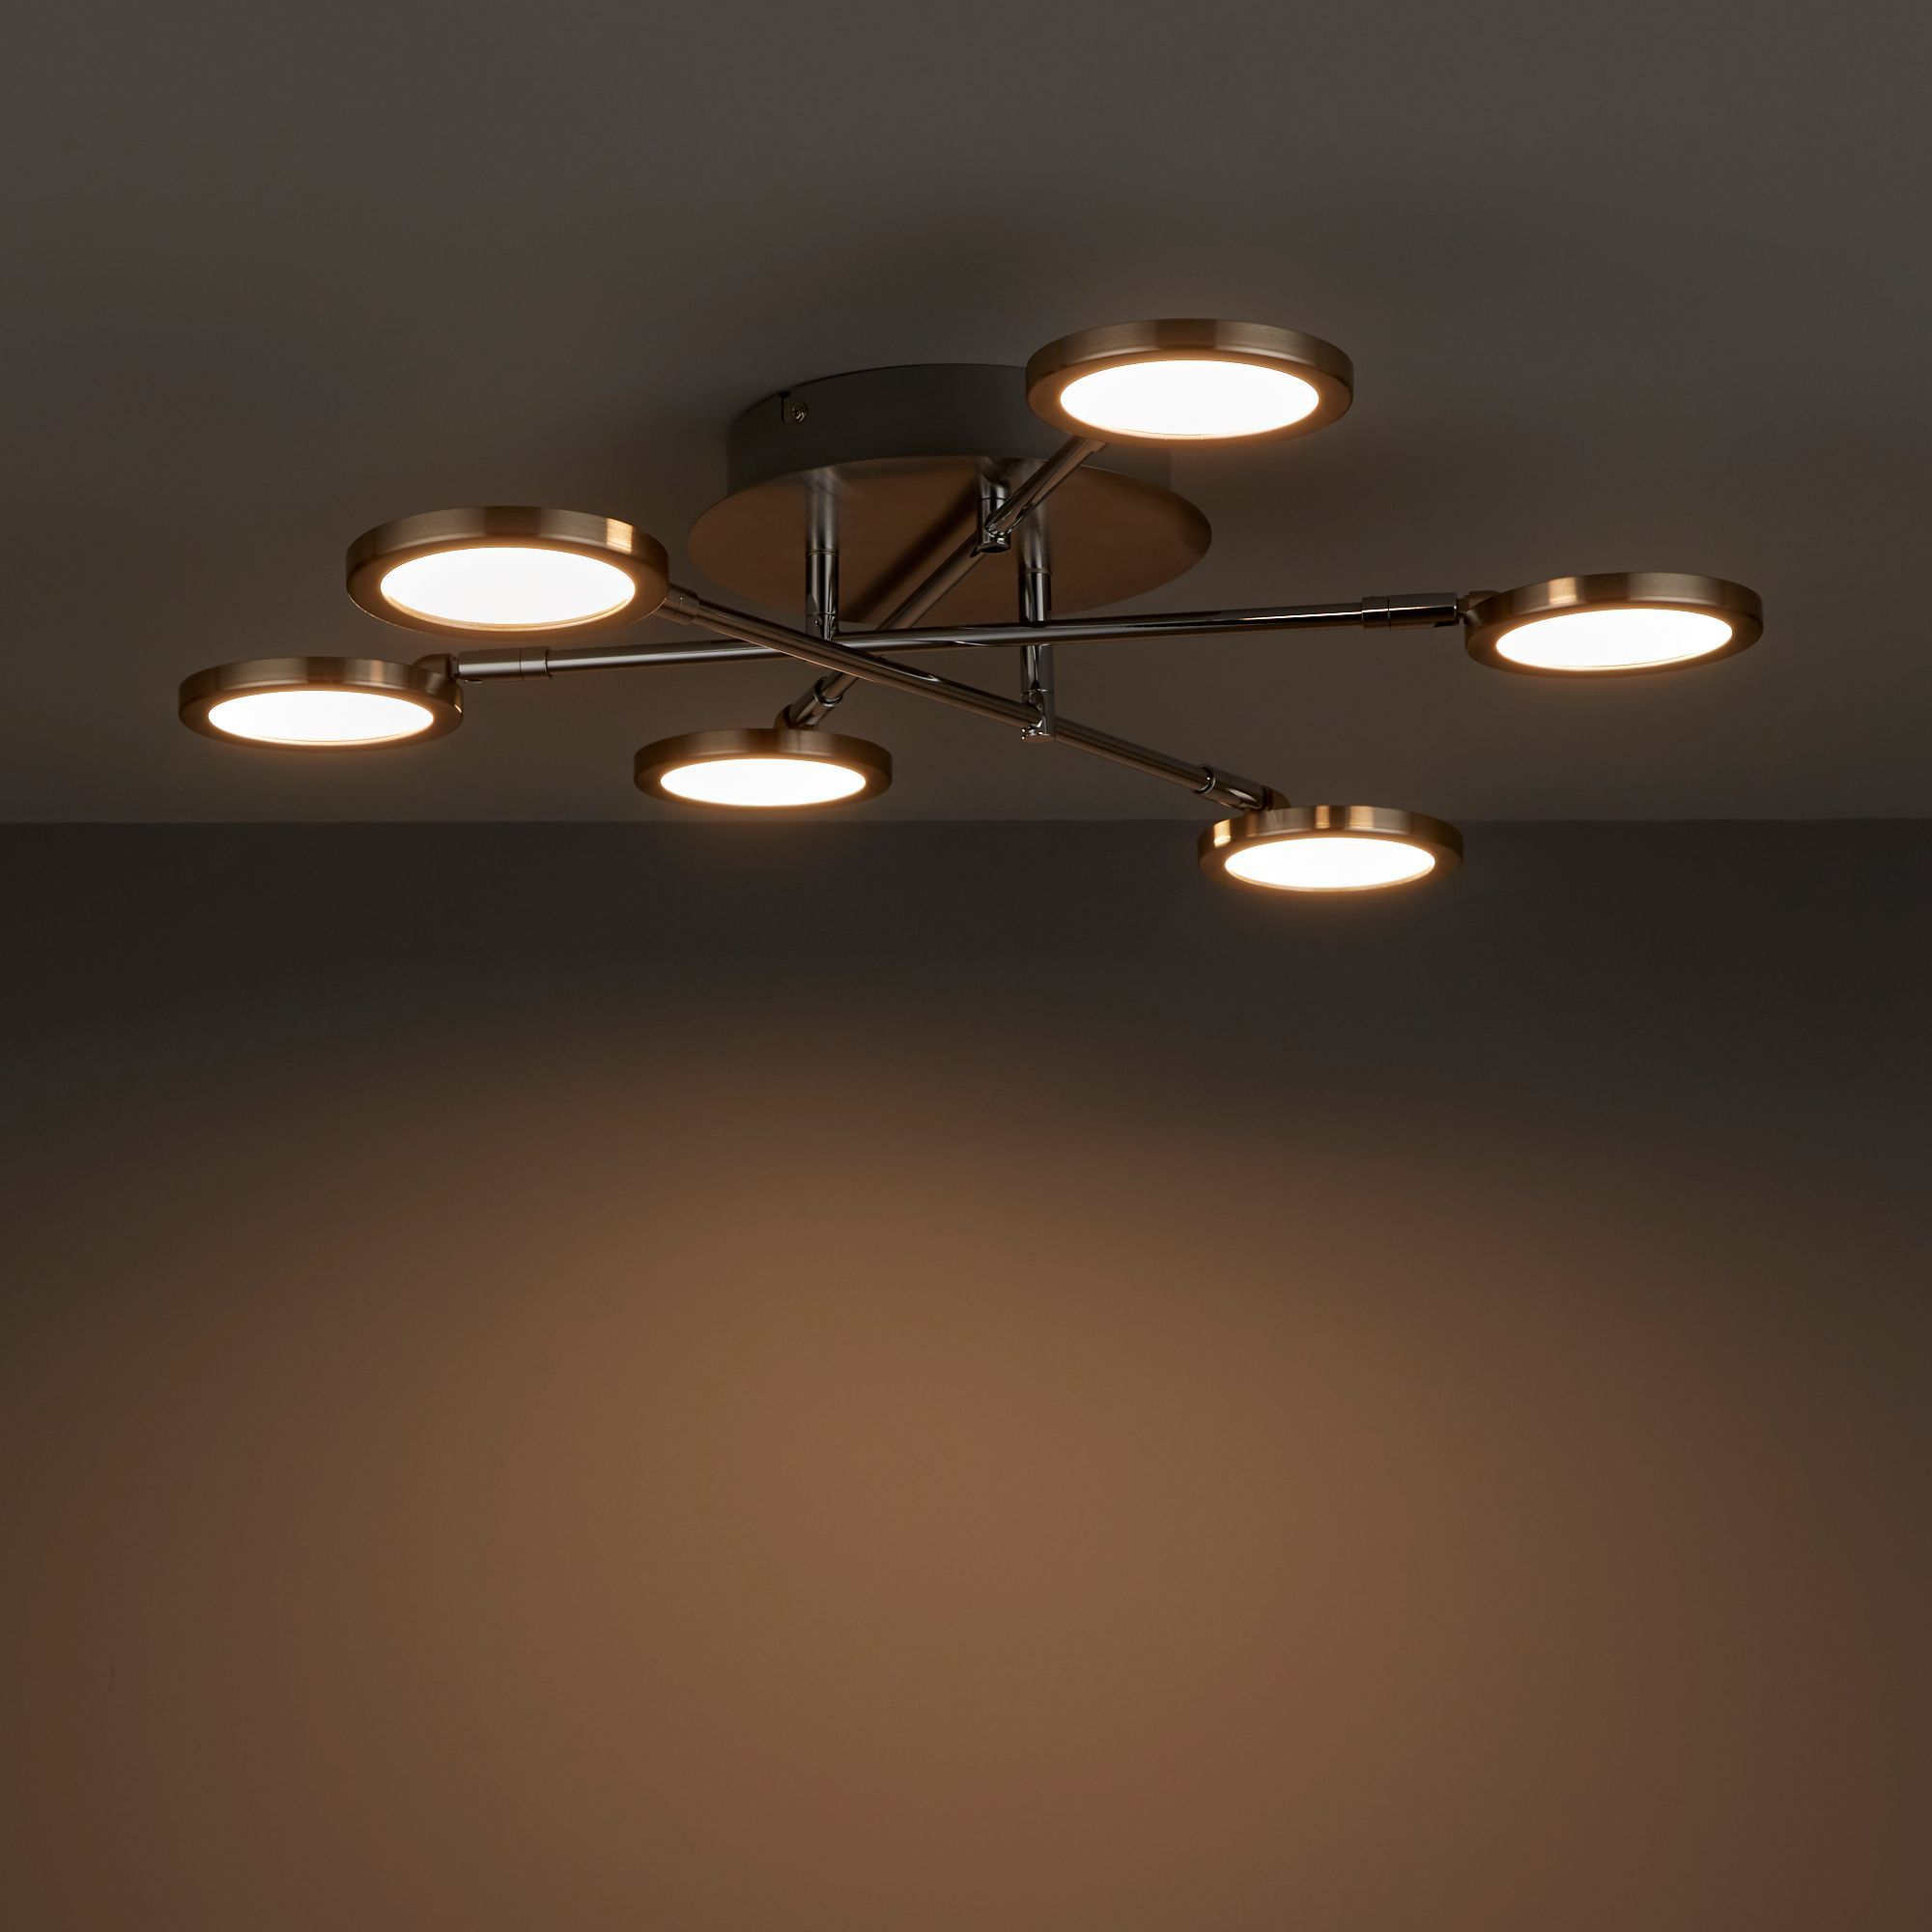 Equium Brushed Chrome Effect 6 Lamp Ceiling Light B Q For All Your Home And Garden Supplies And Advice Ceiling Lights Low Ceiling Lighting Ceiling Lights Diy Bq living room lights